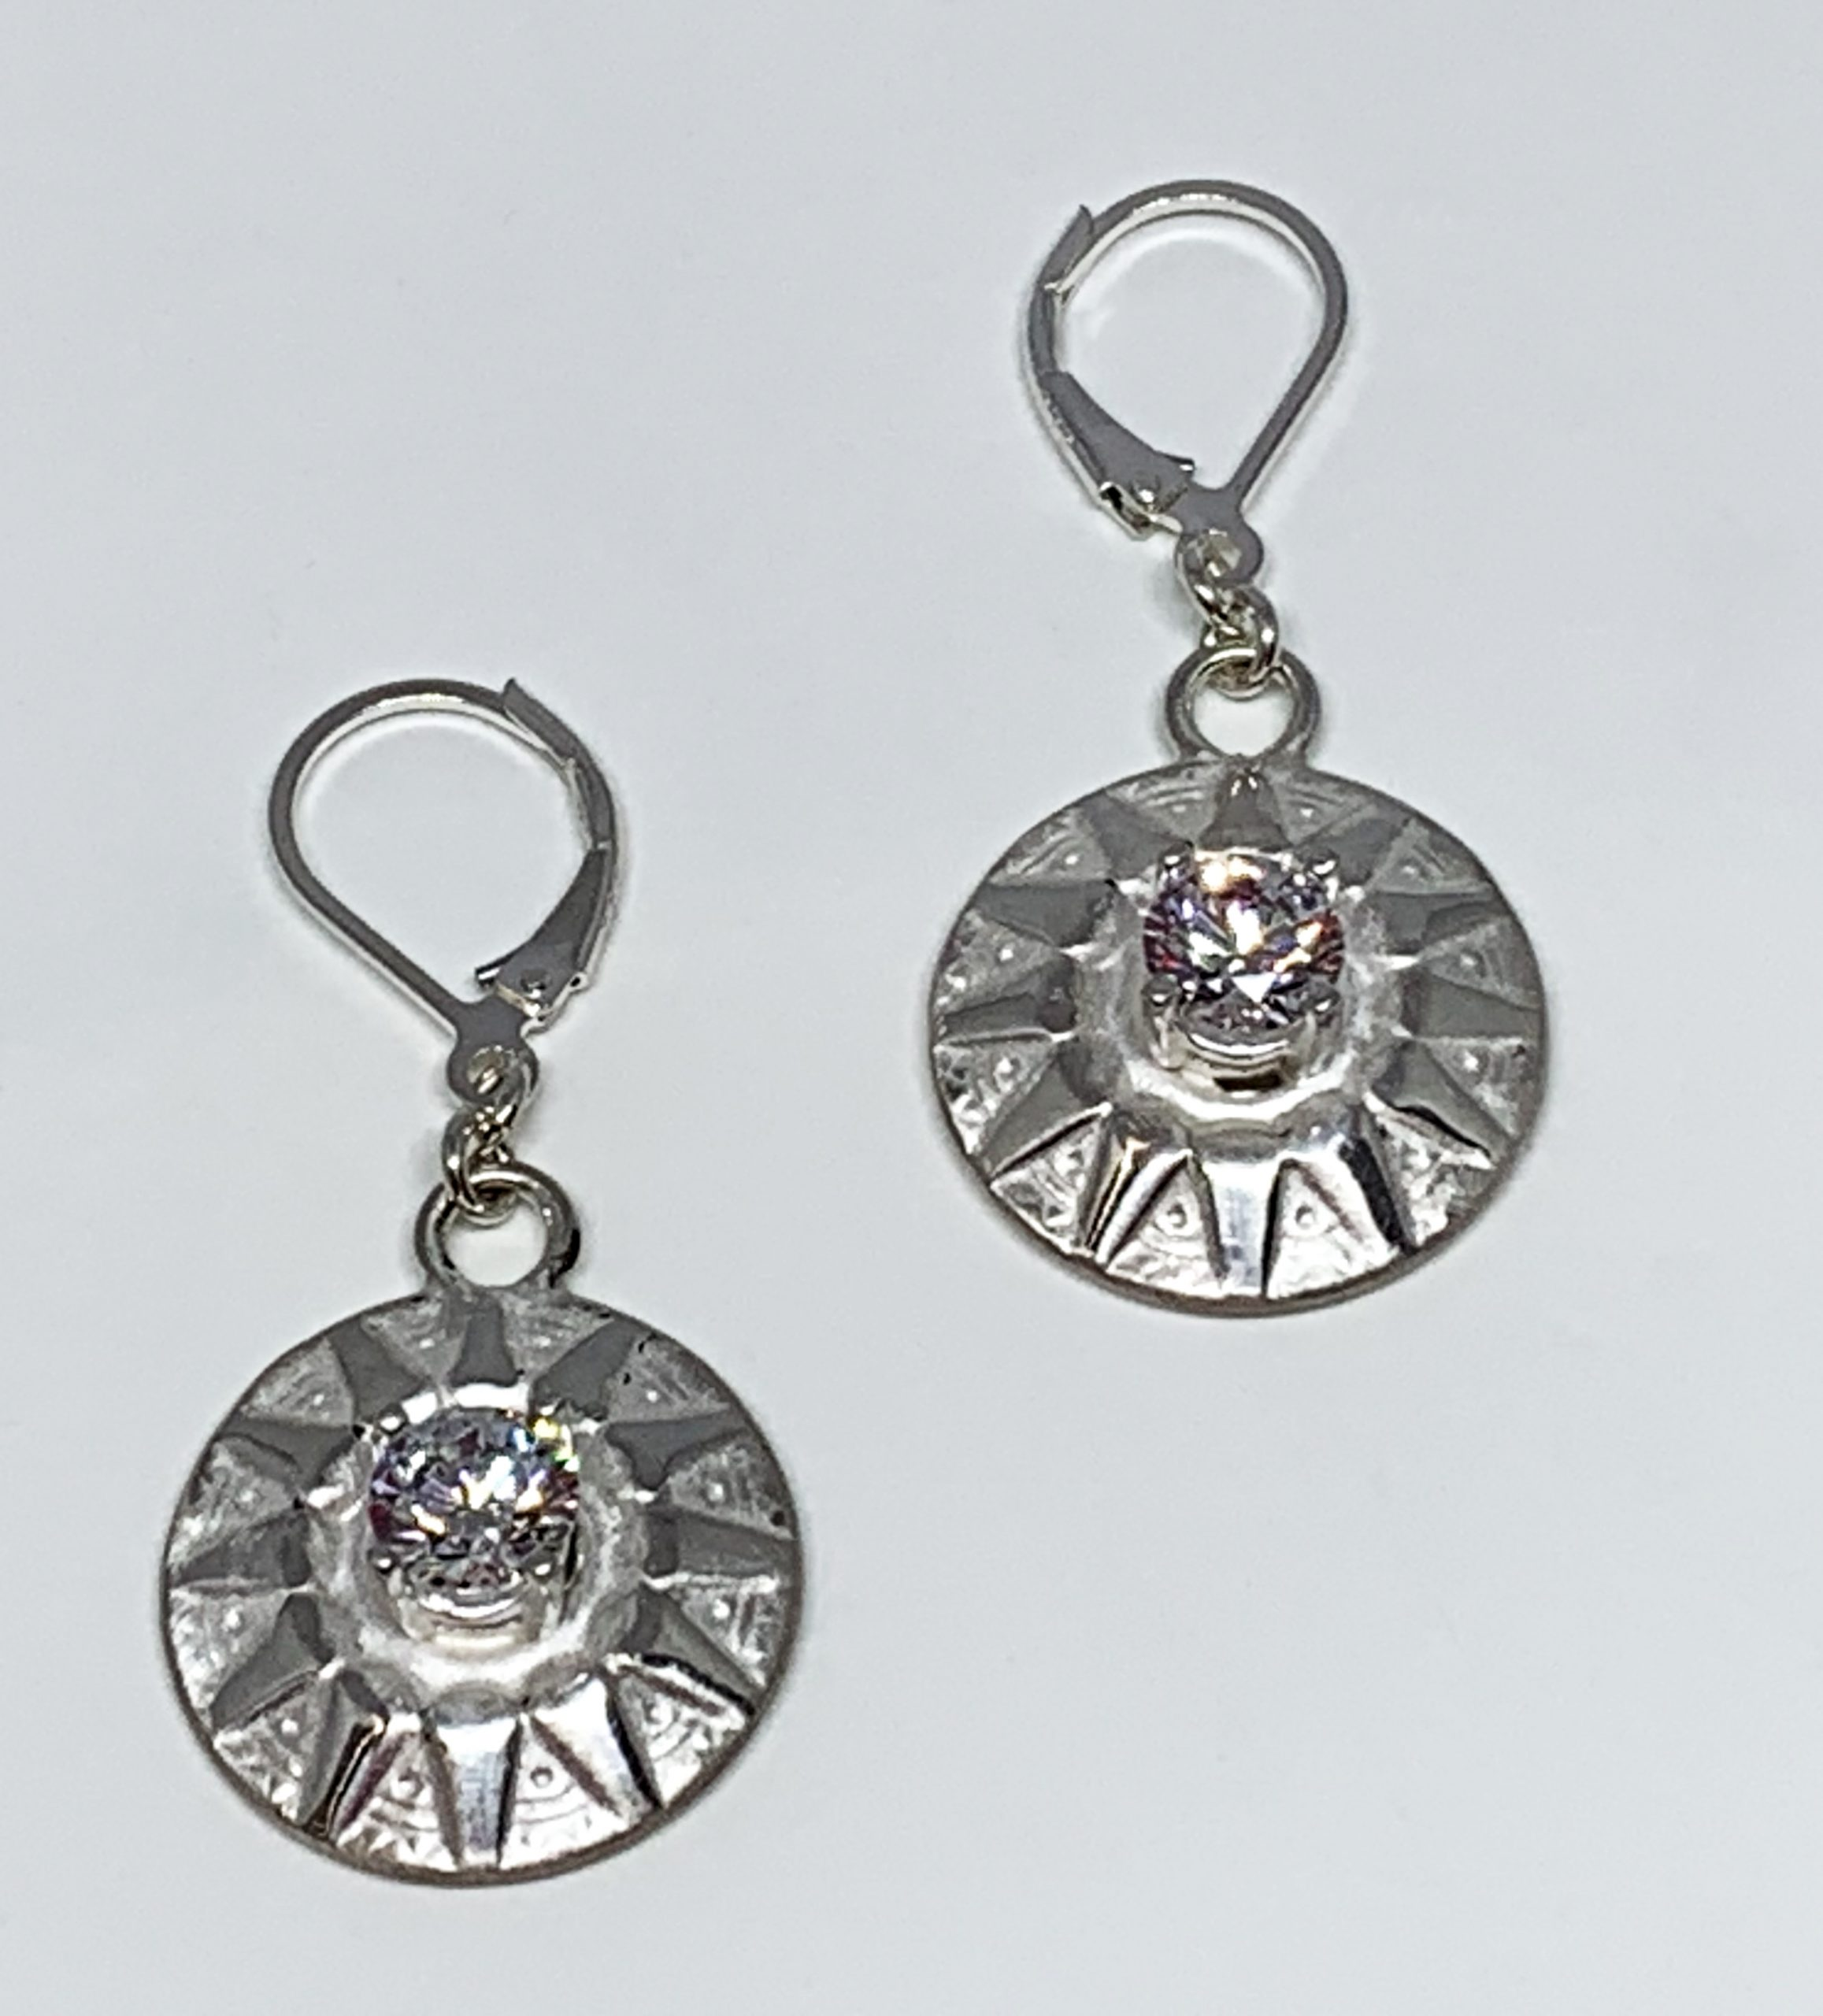 Sterling silver and CZ  sunburst earrings by Karyn Chopik | Effusion Art Gallery + Cast Glass Studio, Invermere BC